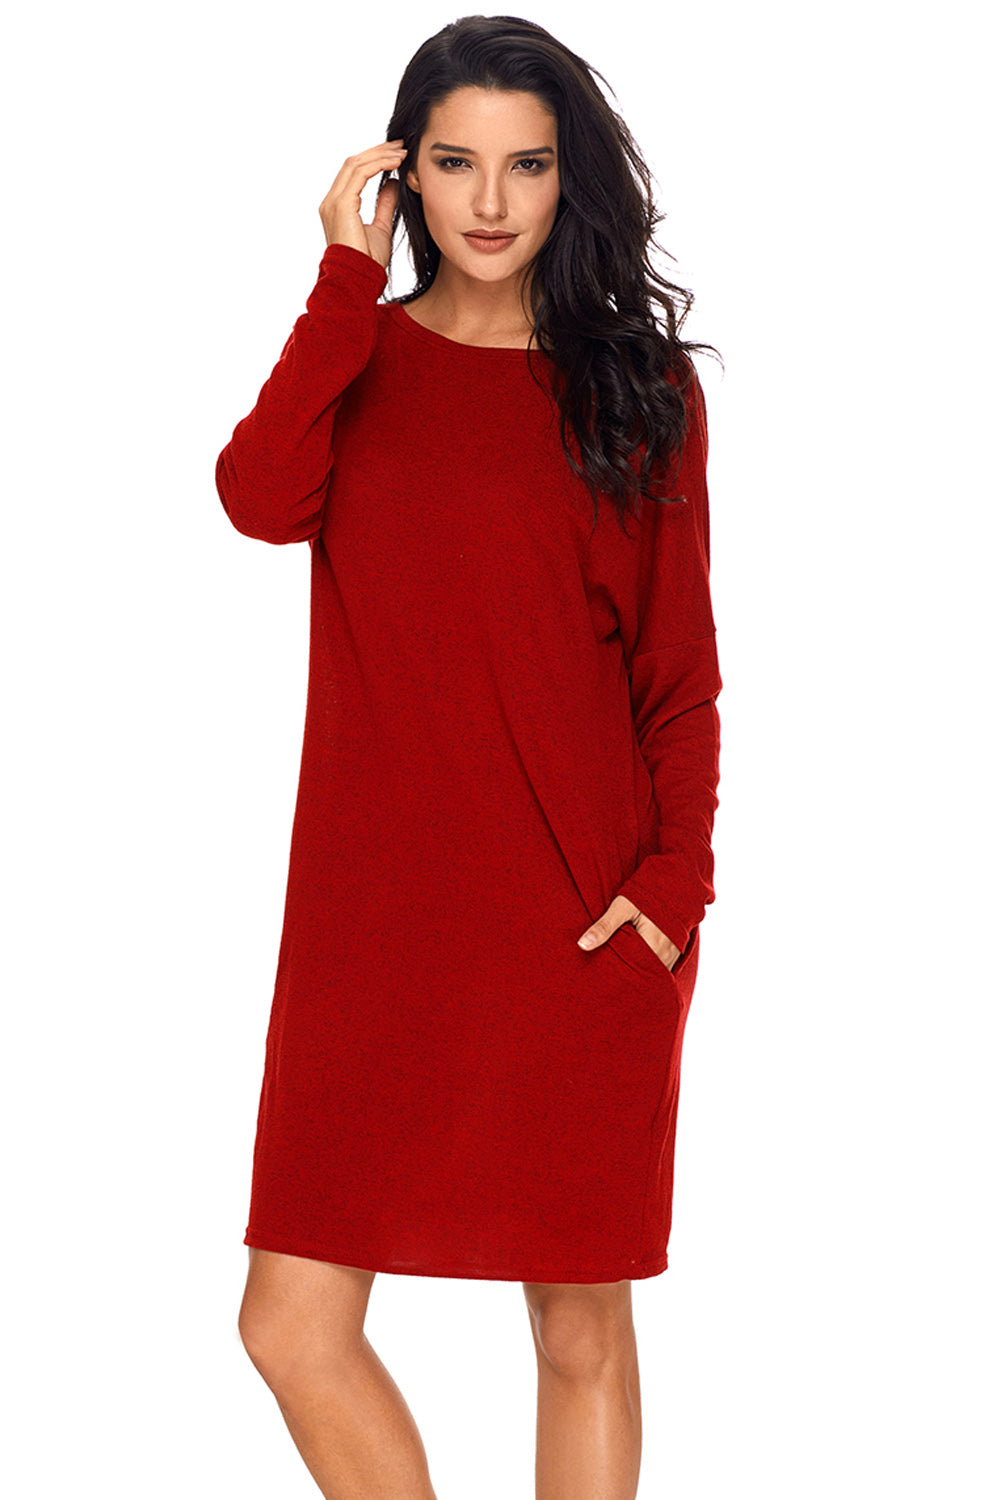 Chicloth Red Pocketed Loose Fit Dress - XL / Red